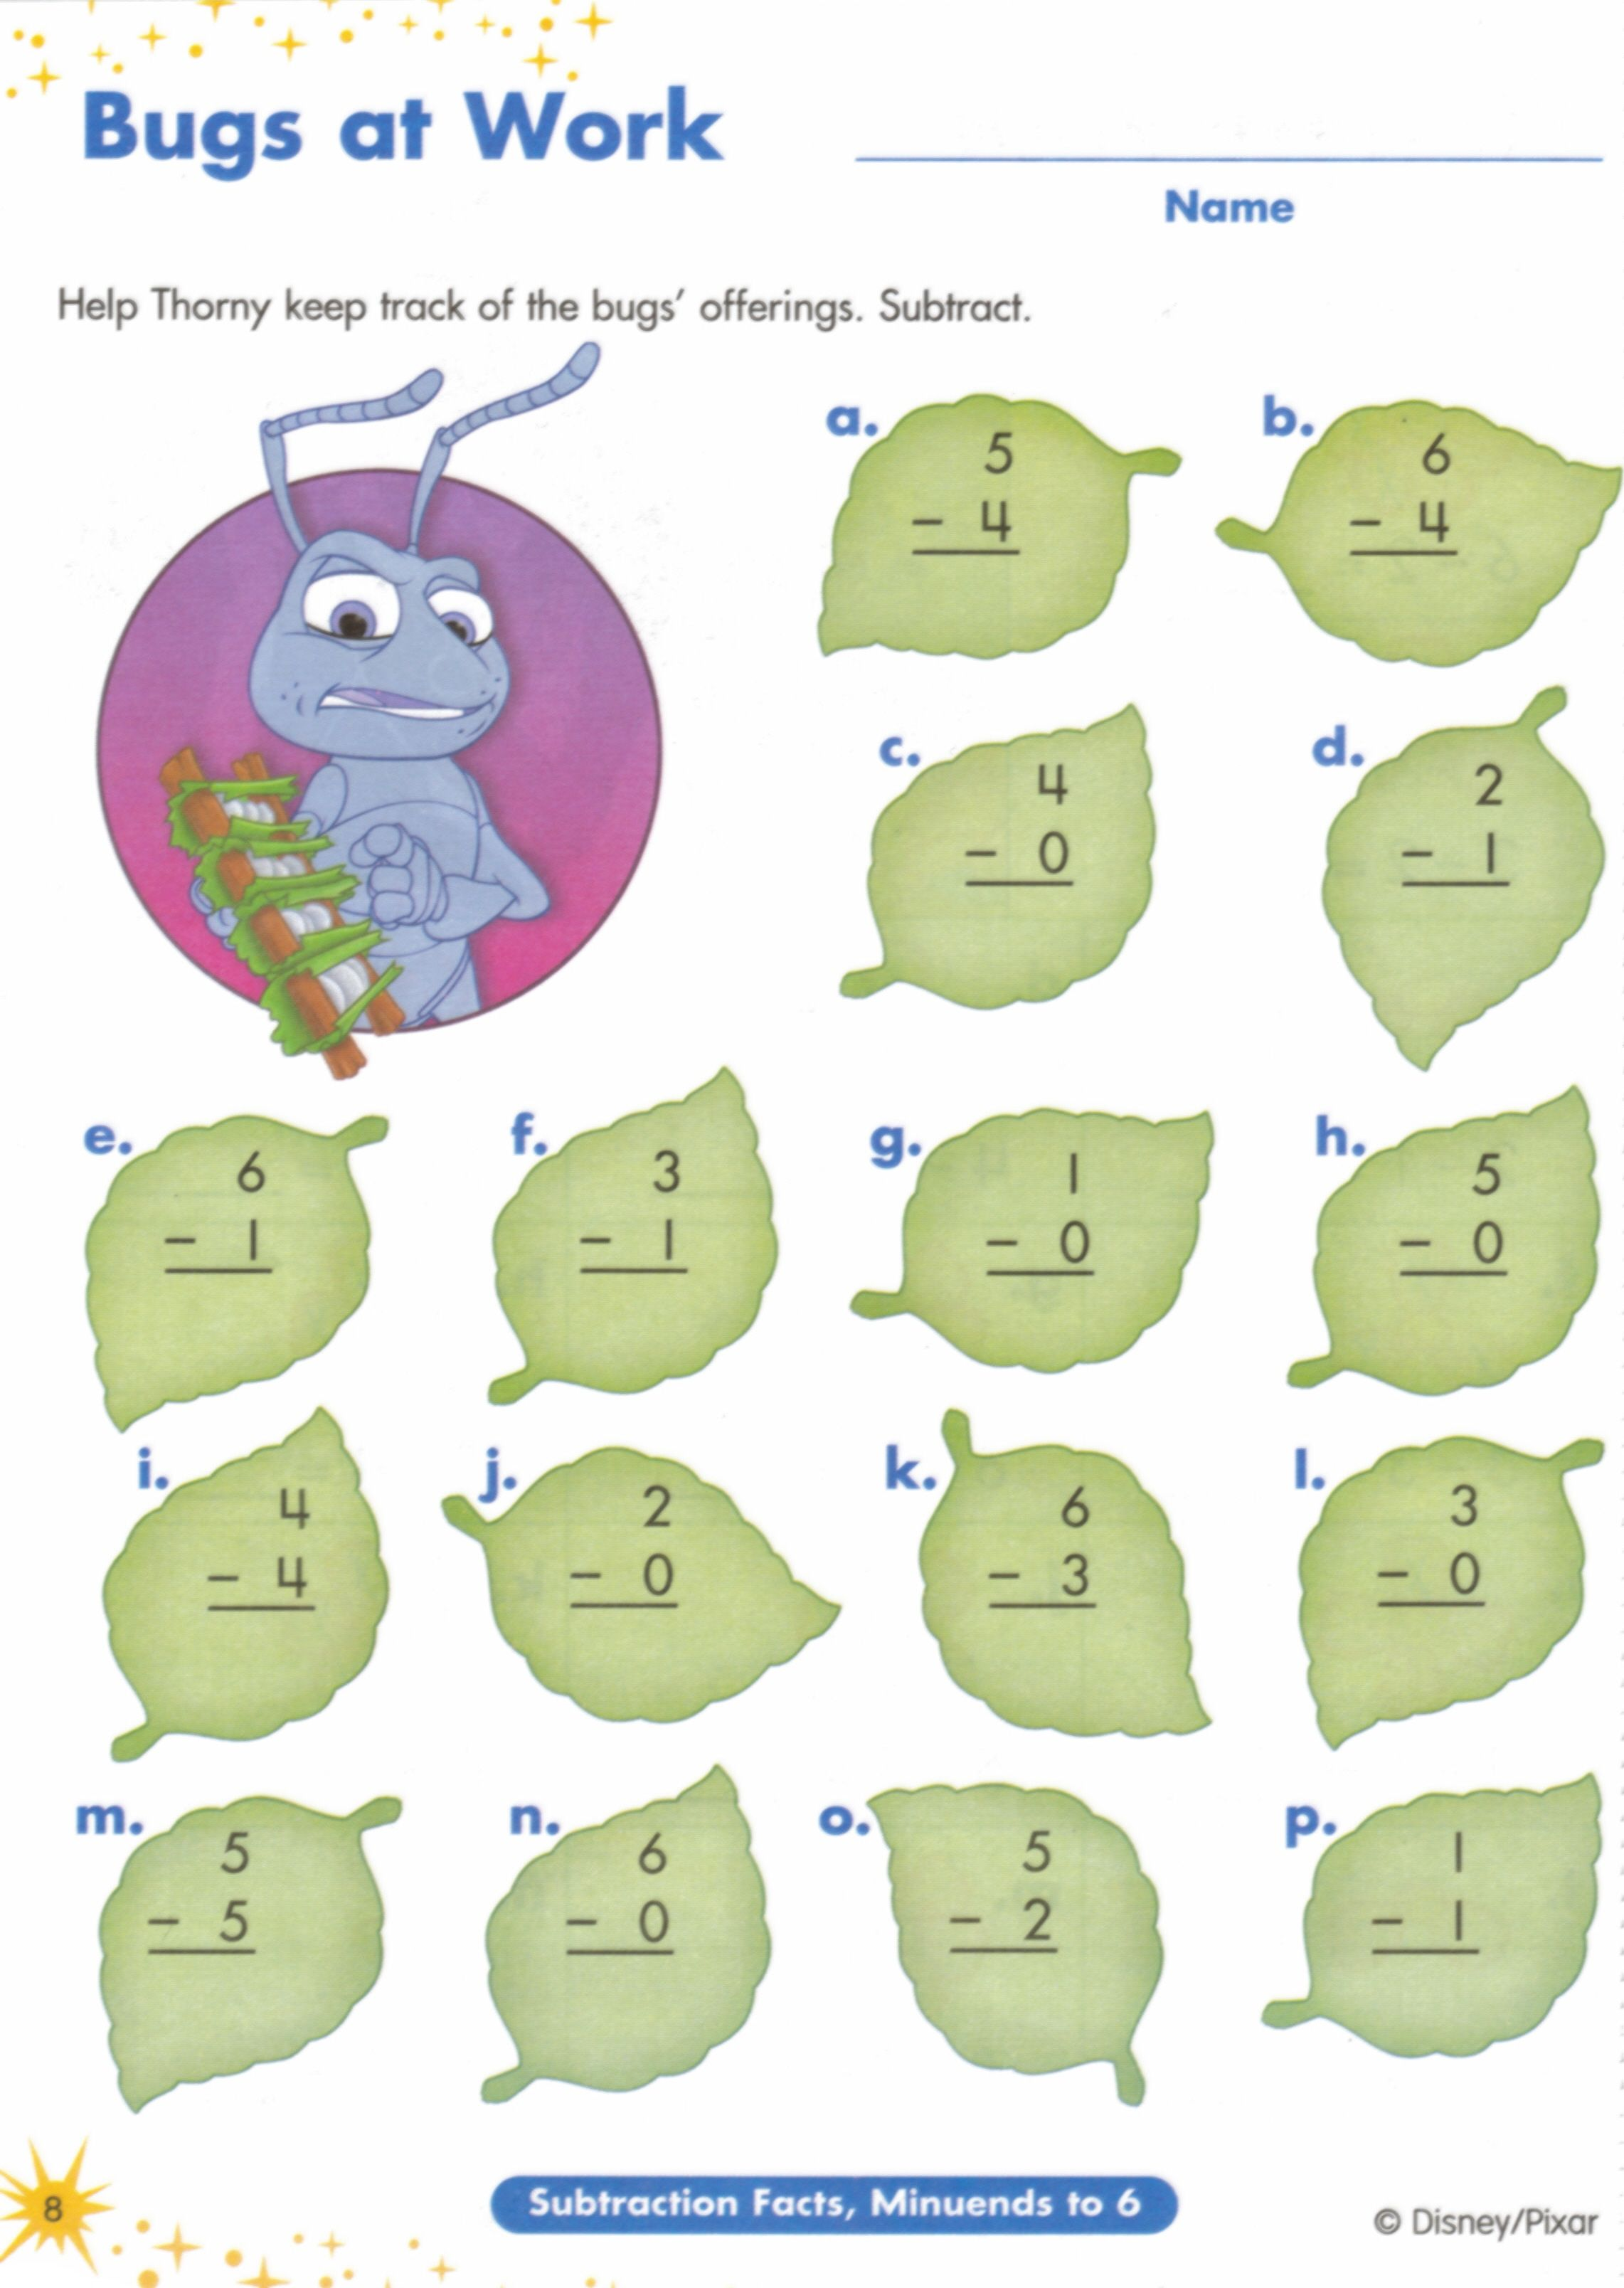 Proatmealus  Marvellous  Images About Worksheets On Pinterest  Fun Facts For Kids  With Interesting  Images About Worksheets On Pinterest  Fun Facts For Kids Earth Day Worksheets And Jungles With Extraordinary Cause And Effect Comprehension Worksheets Also Free Print Worksheets In Addition Personification Worksheets Th Grade And Plotting Point Worksheet As Well As Worksheets For Singular And Plural Additionally Maths Worksheet Ks From Pinterestcom With Proatmealus  Interesting  Images About Worksheets On Pinterest  Fun Facts For Kids  With Extraordinary  Images About Worksheets On Pinterest  Fun Facts For Kids Earth Day Worksheets And Jungles And Marvellous Cause And Effect Comprehension Worksheets Also Free Print Worksheets In Addition Personification Worksheets Th Grade From Pinterestcom